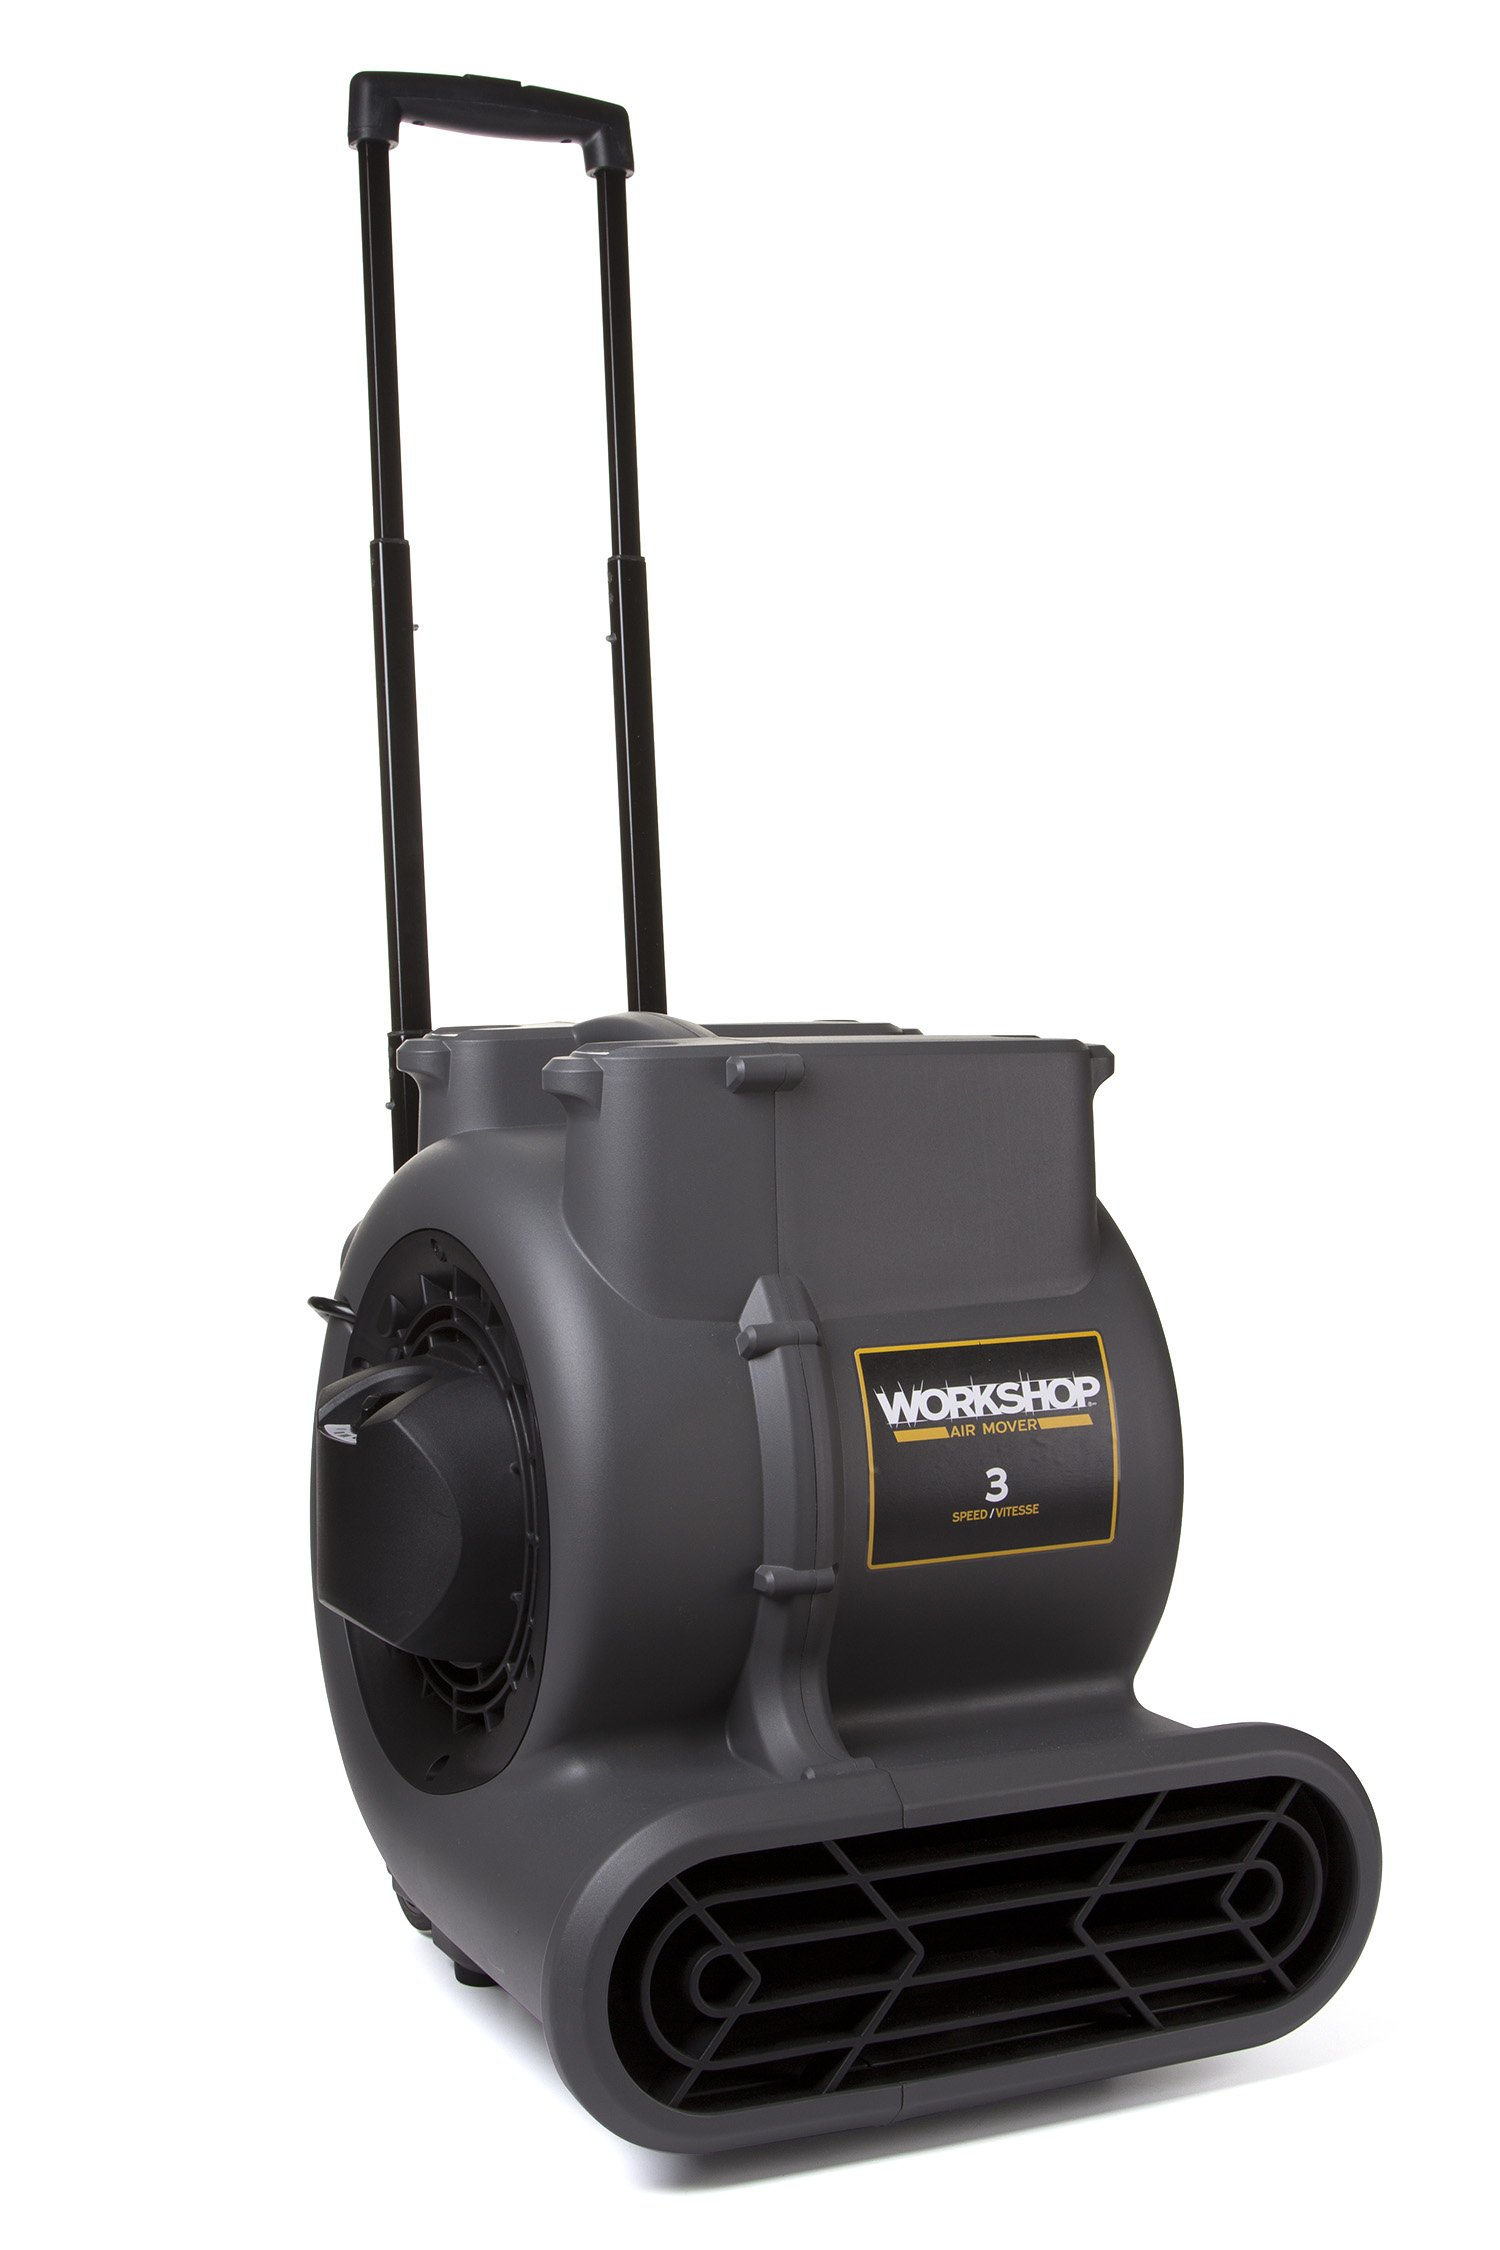 WORKSHOP WS1625AM Air Mover Fan & Carpet Dryer, High Velocity Blower Fan / Floor Dryer with Collapsible Handle & Wheels by WORKSHOP Wet/Dry Vacs (Image #1)